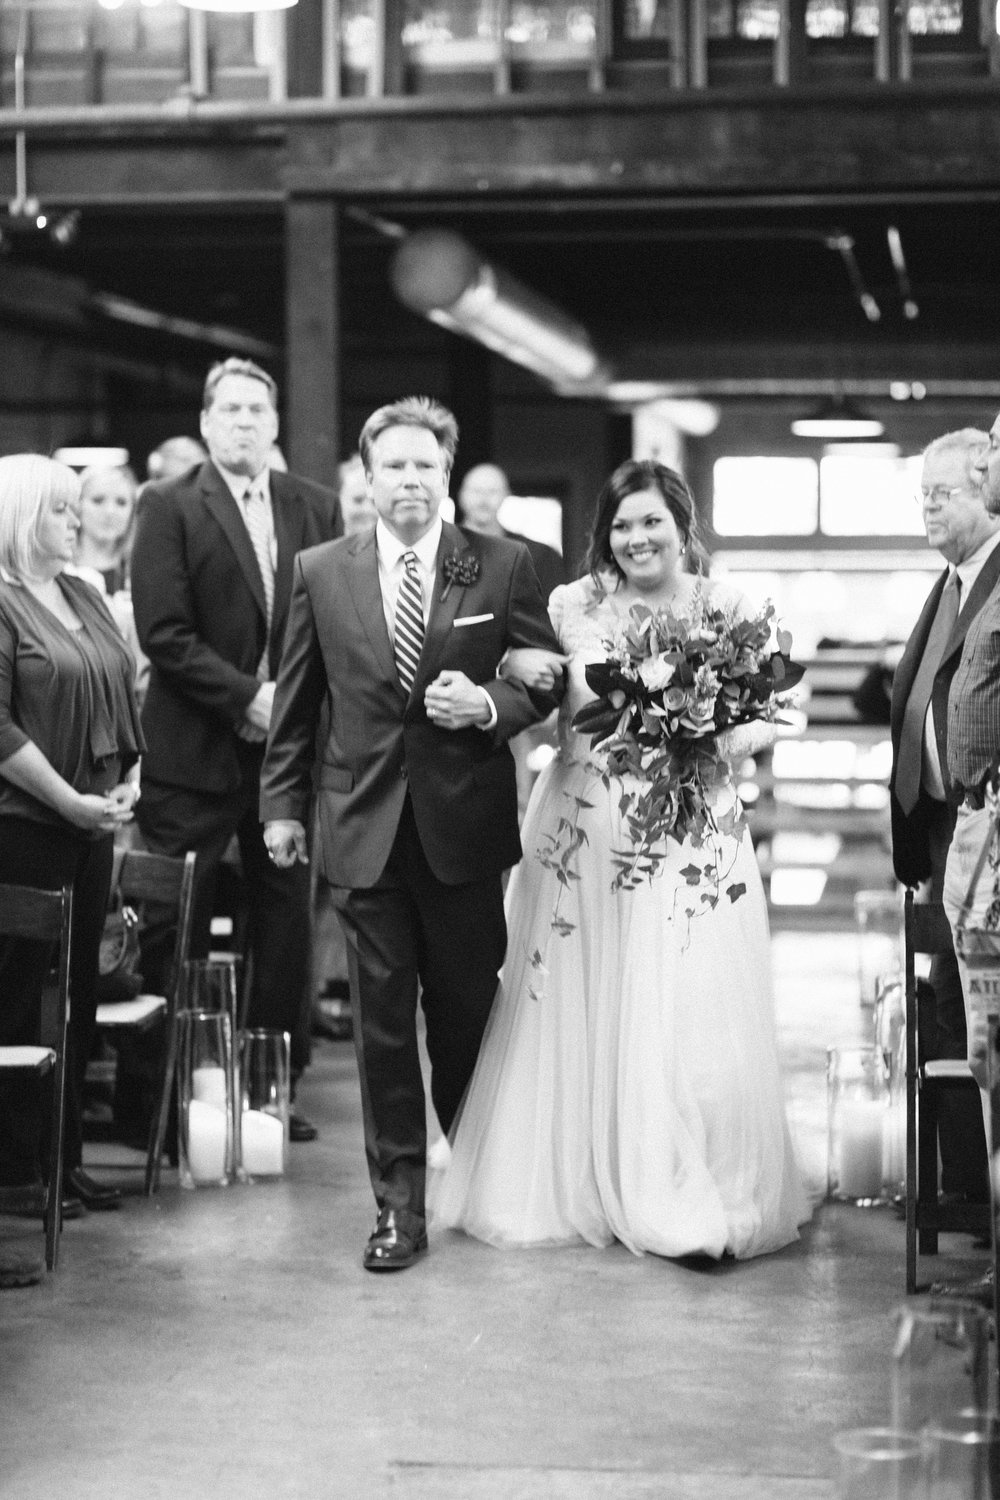 Lauren_Jeremy_Standard_Wedding_Knoxville_Abigail_Malone_Photography_FIlm-463.jpg